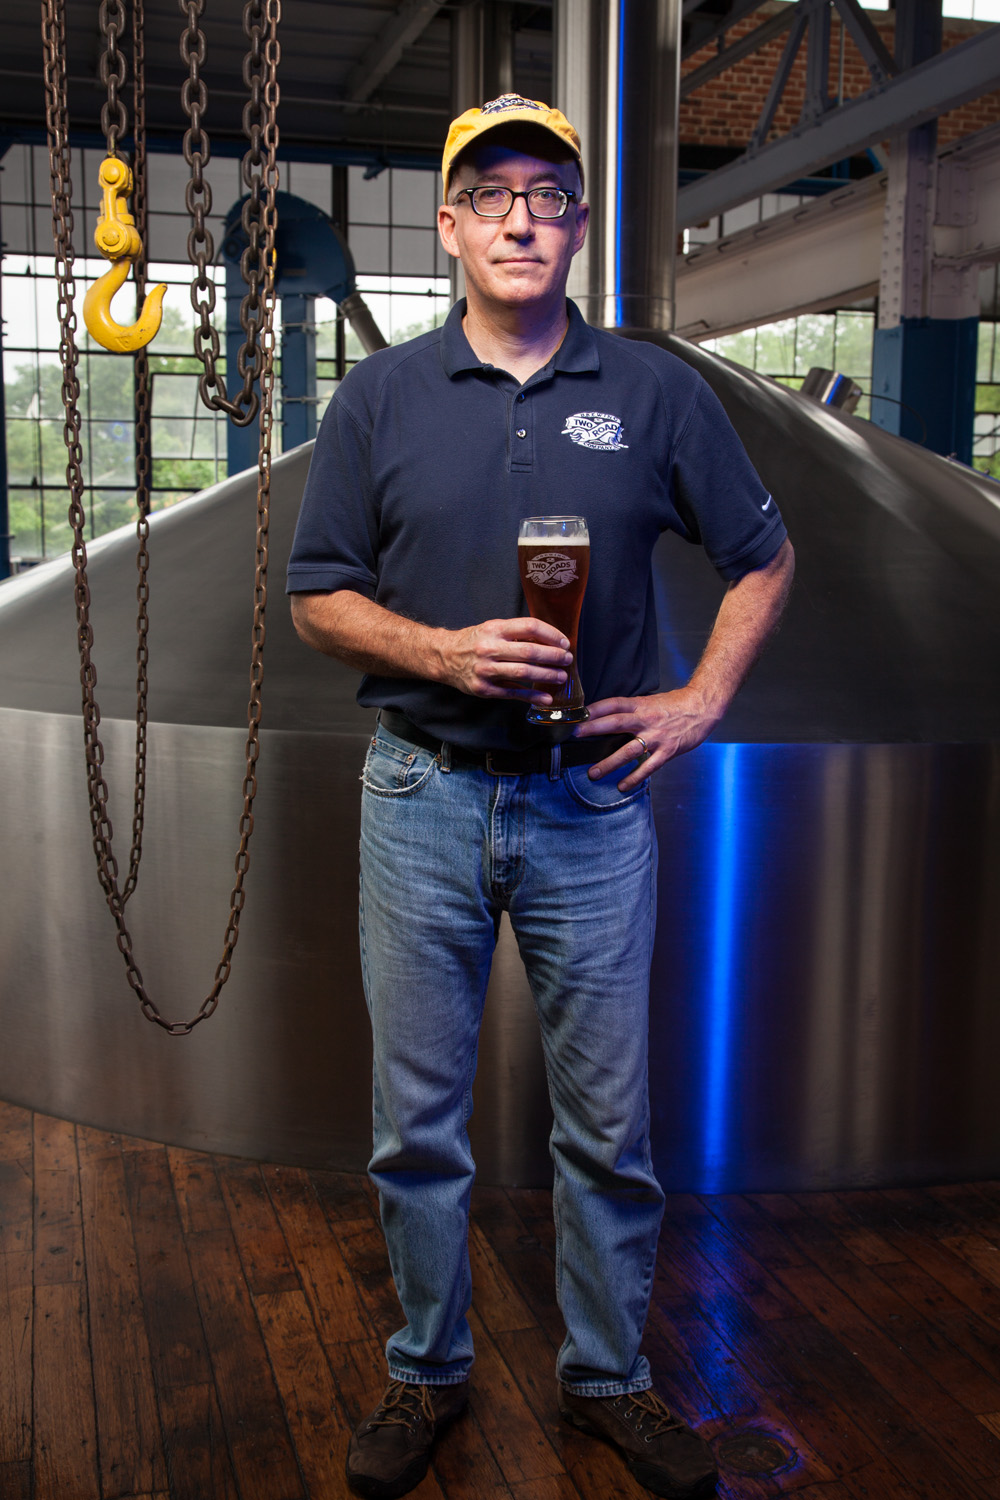 Phil Markowski, Brewmaster at Two Roads Brewing Co. Stratford, CT Established in 2012